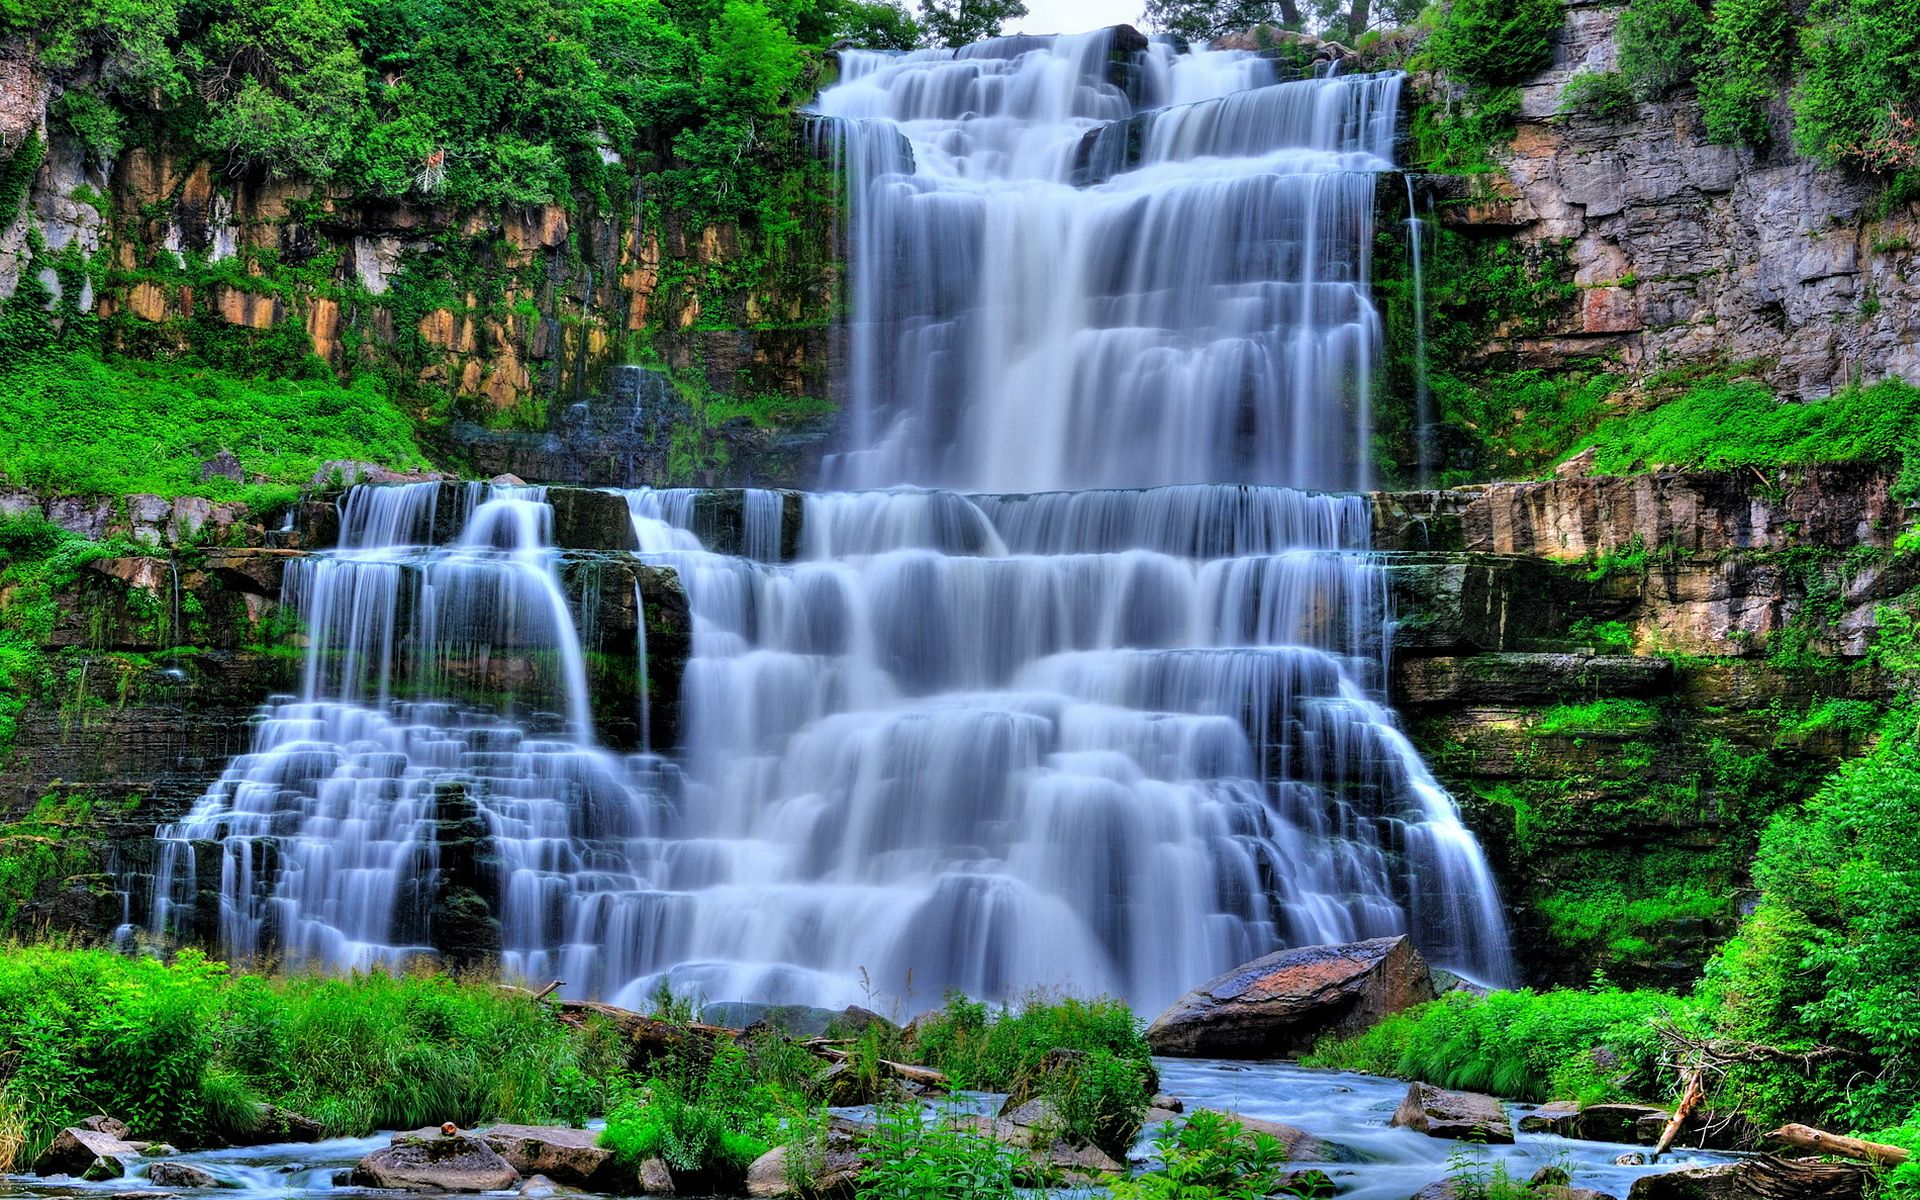 Don t go chasing waterfalls meaning